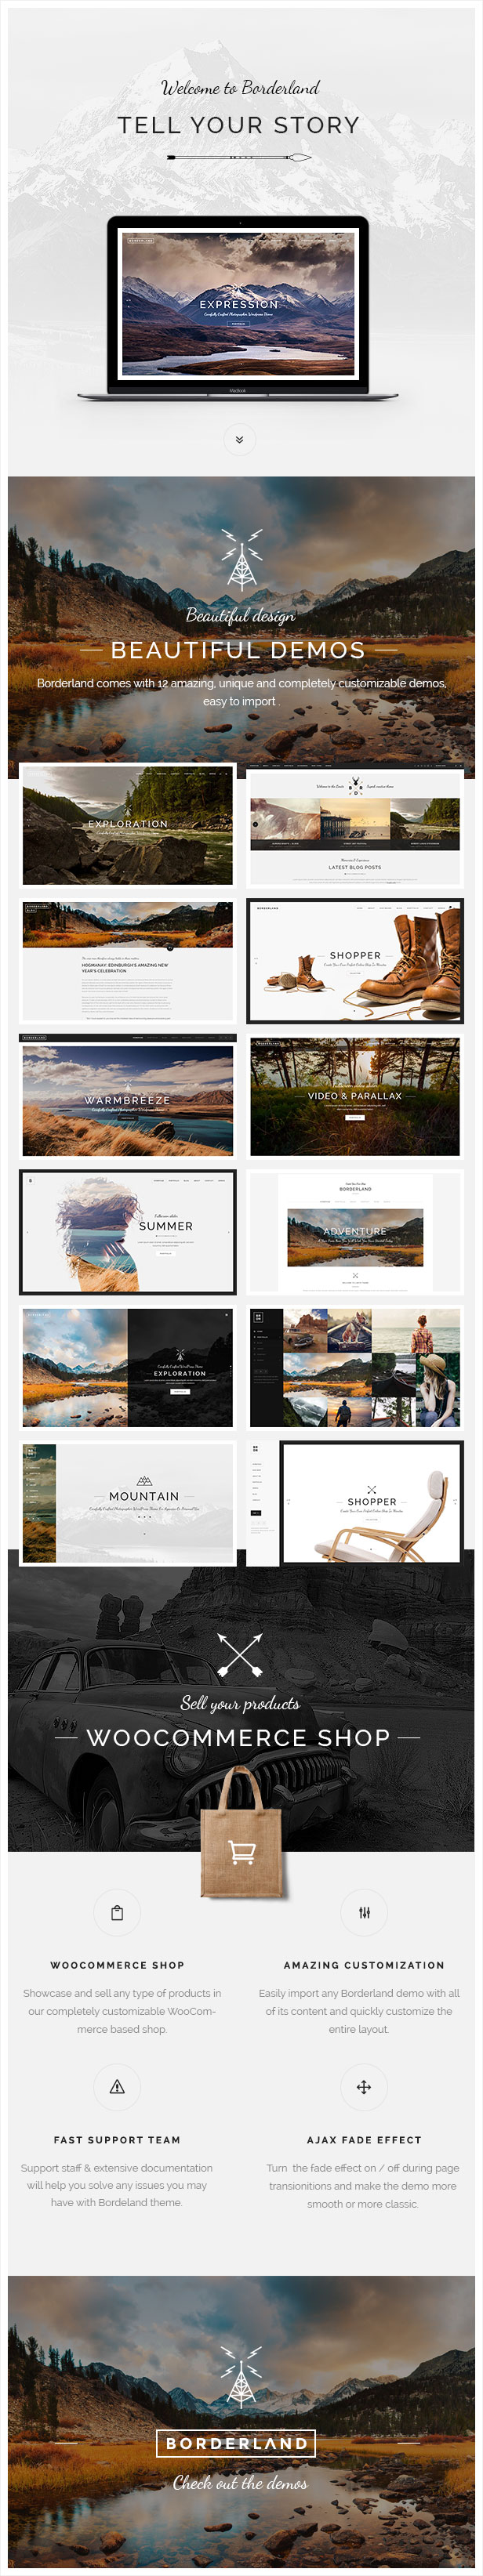 Borderland - Multipurpose Vintage Theme - 1